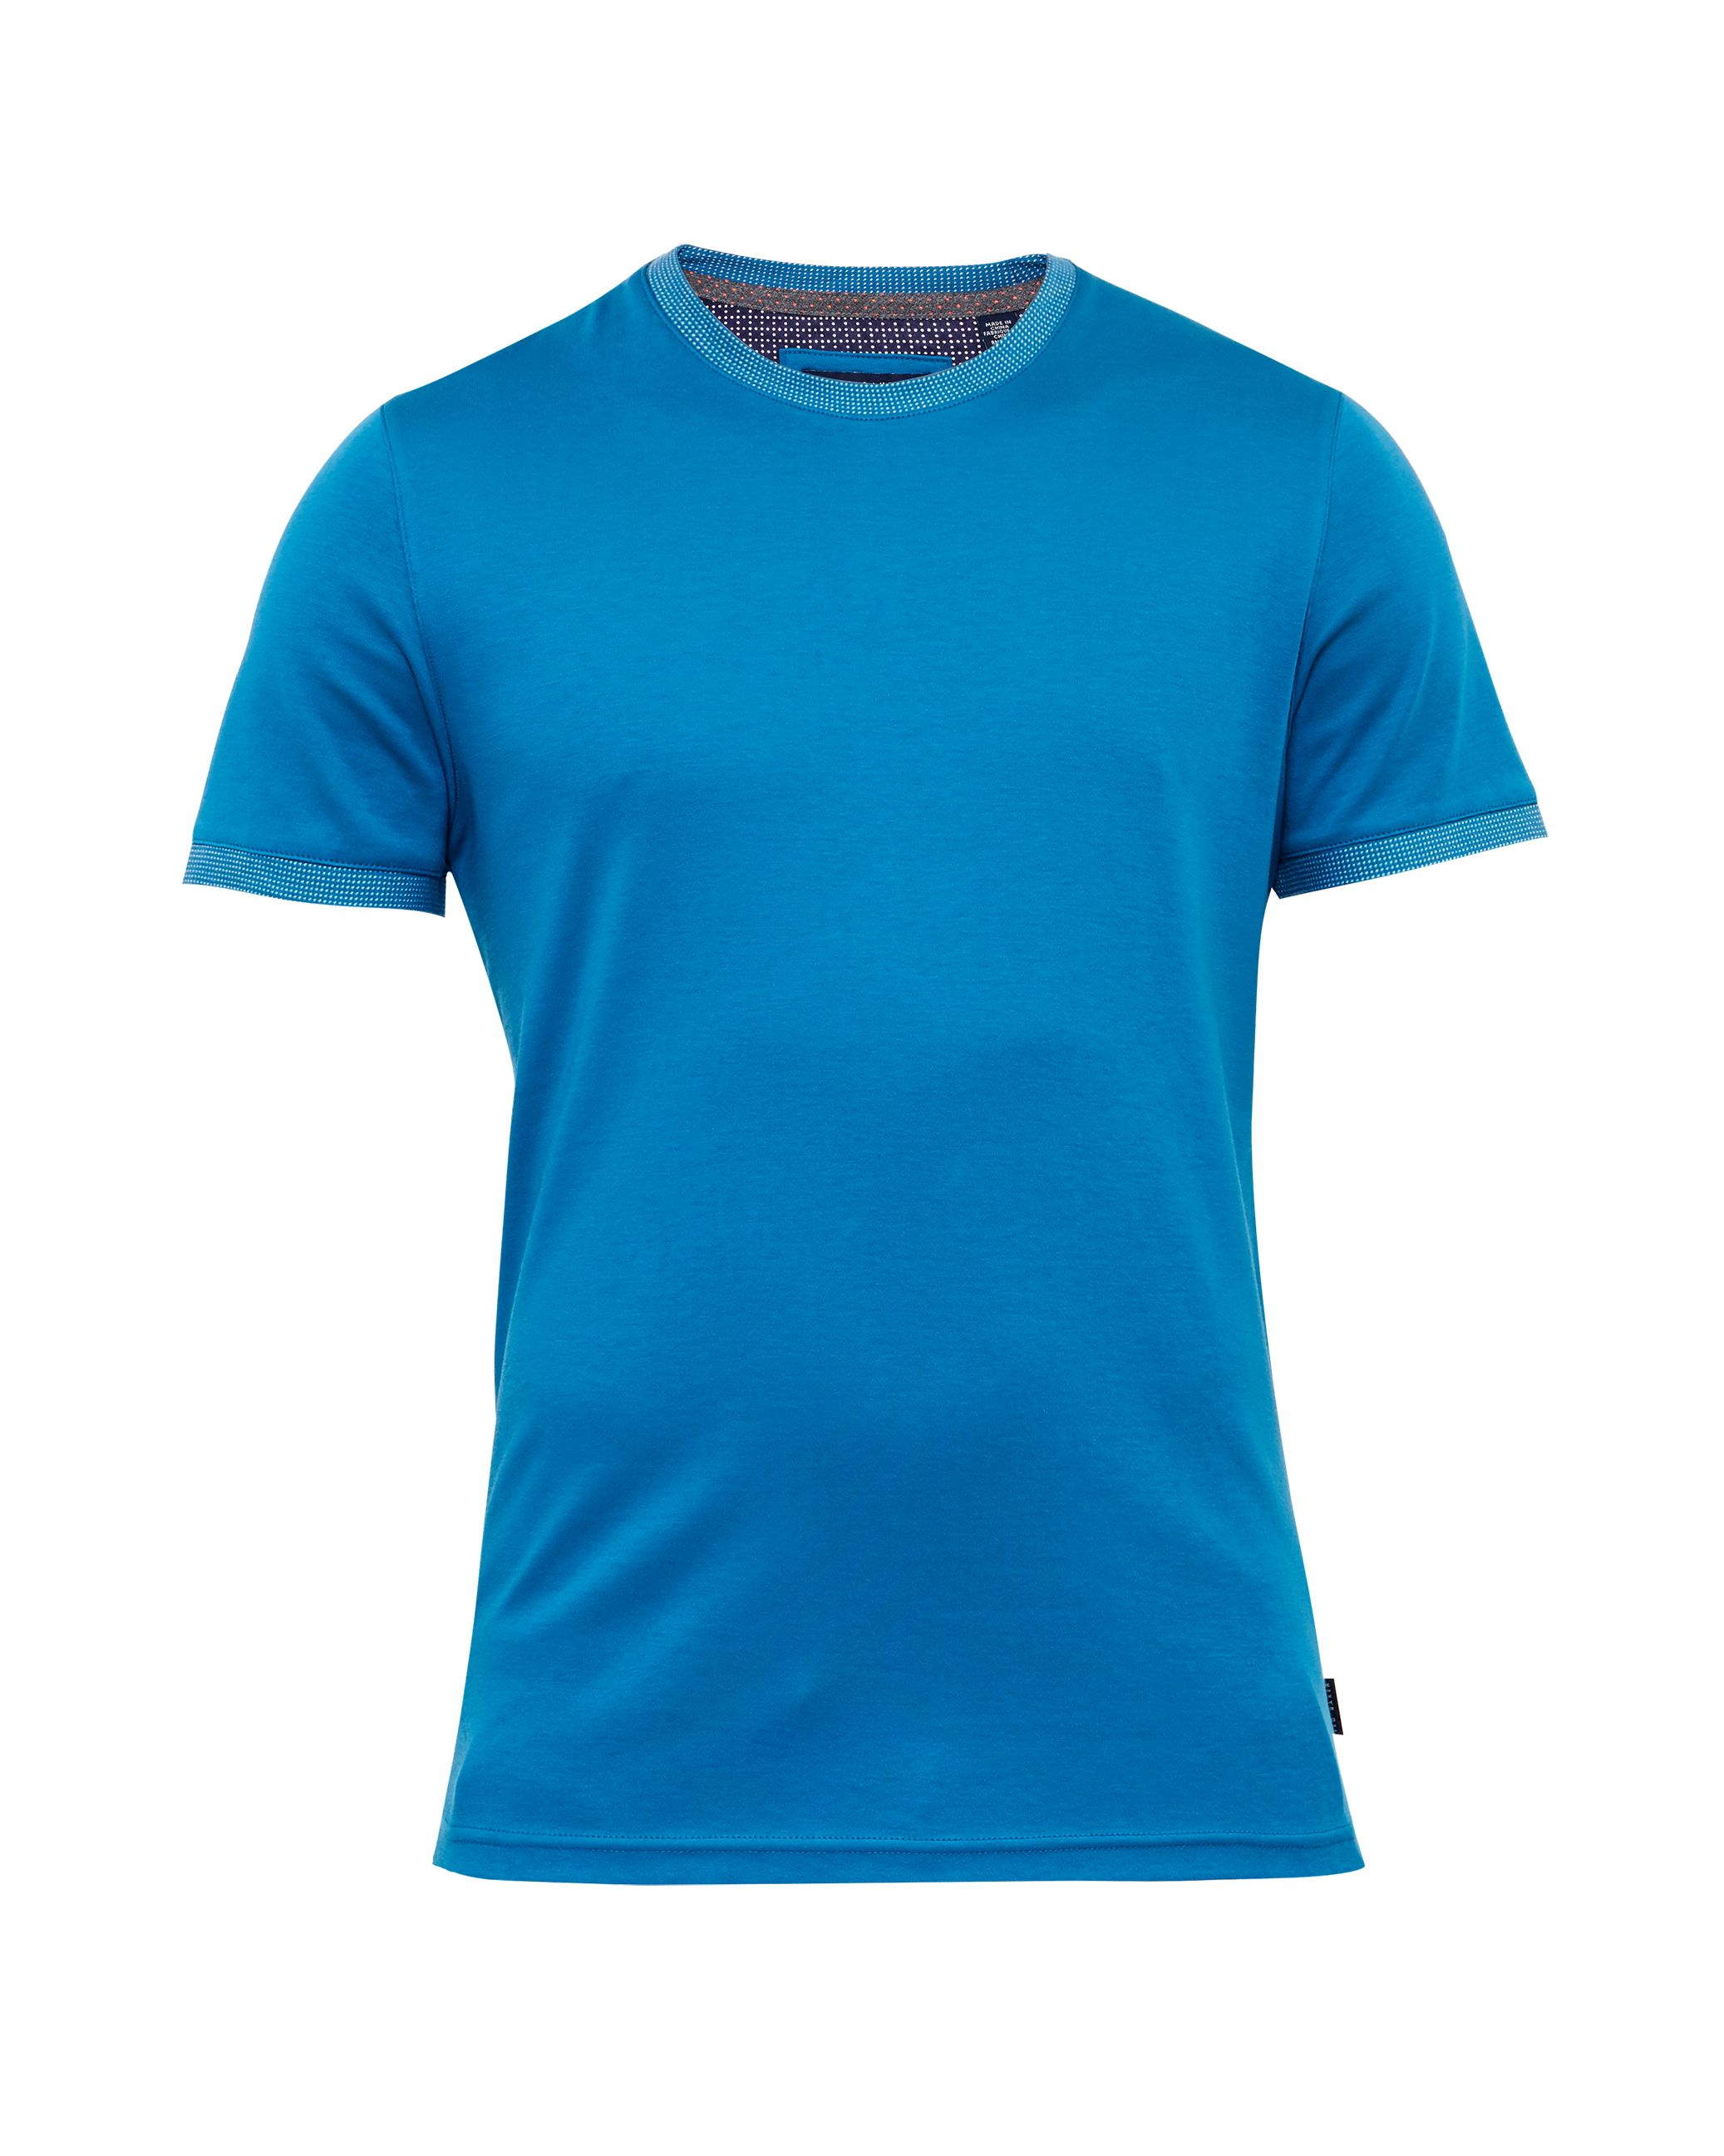 Mens Ted Baker Pik Crew Neck Cotton TShirt Bright Blue